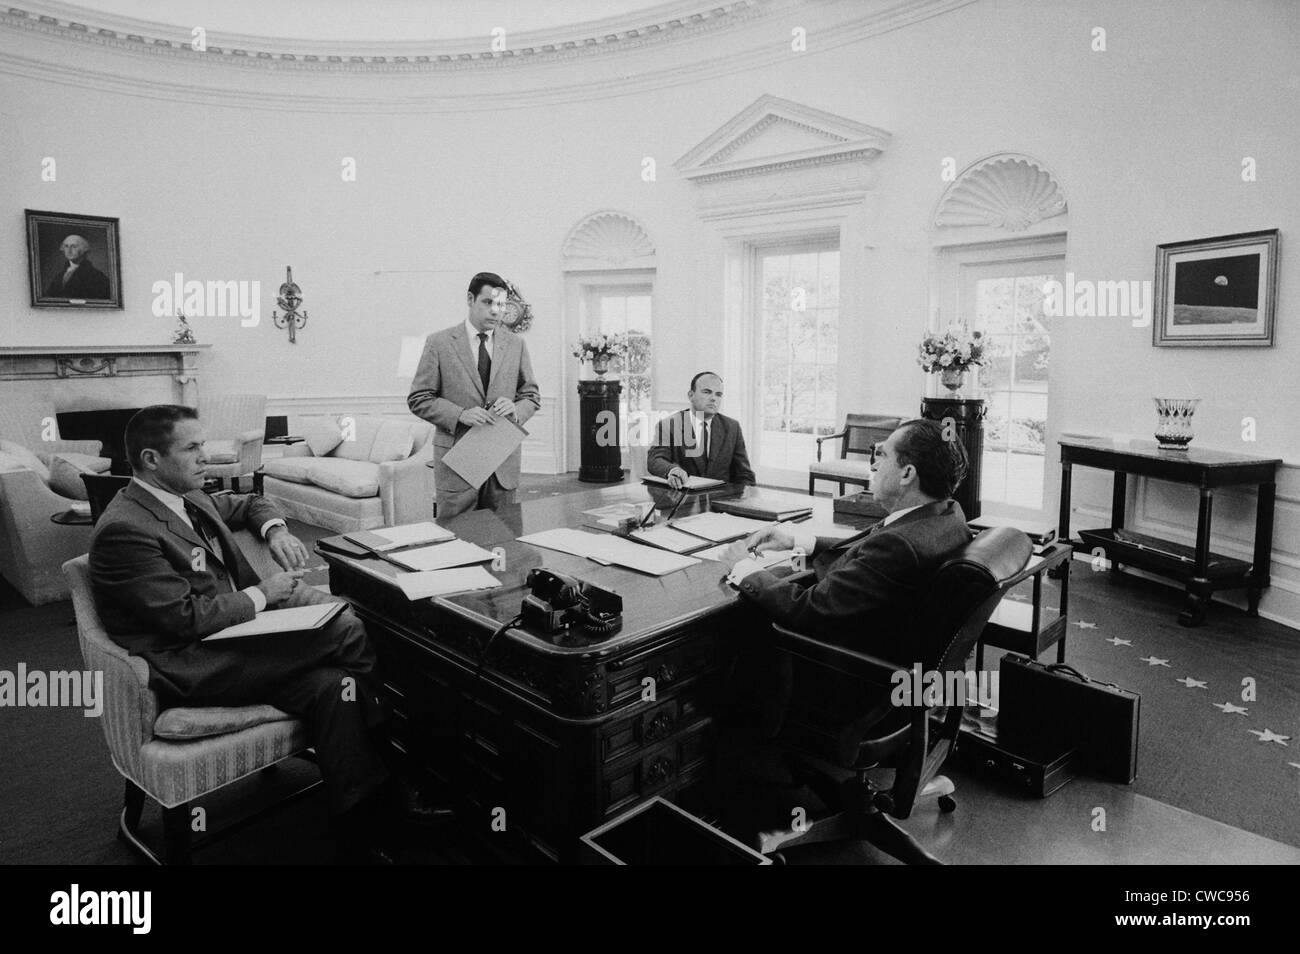 nixon office. President Nixon Meets With Chief Advisers In The Oval Office. L To R H.R. Haldeman Dwight Chapin John D. Ehrlichman Richard Office A